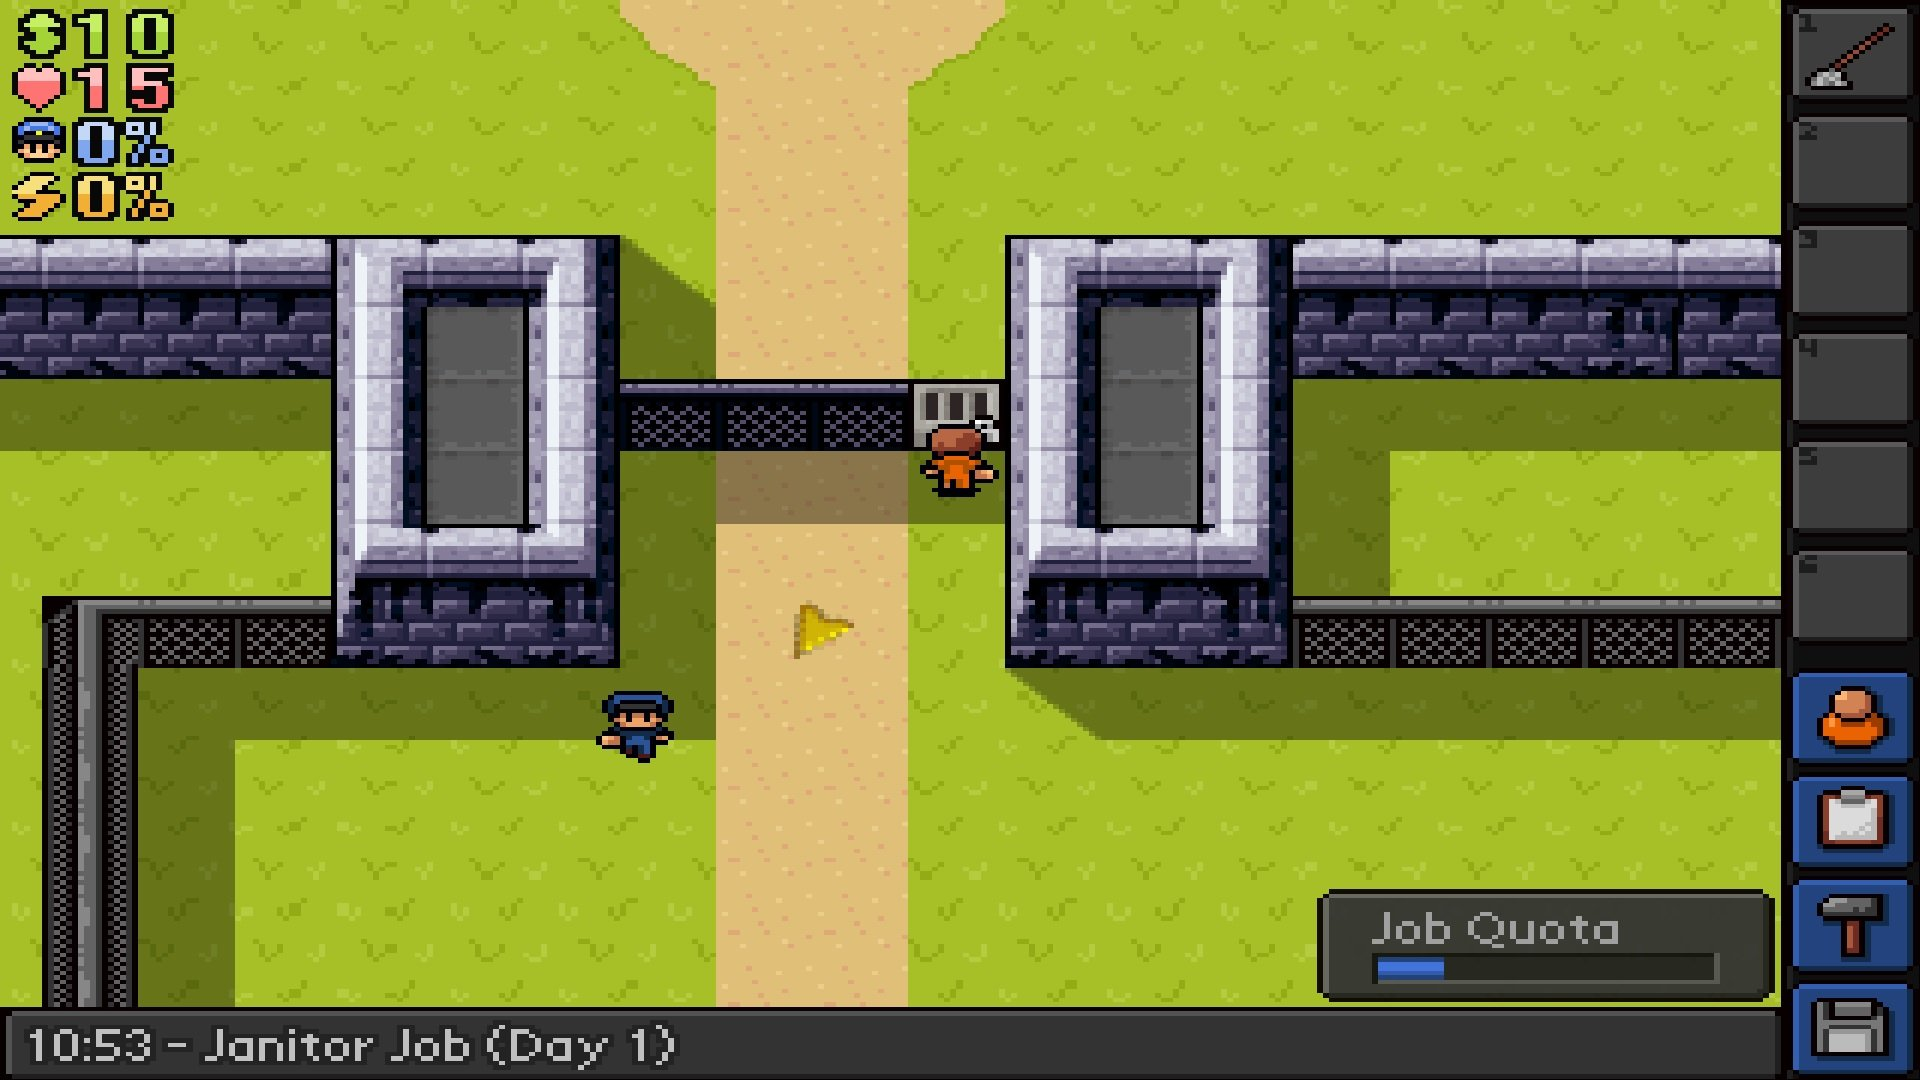 The Escapists - Fhurst Peak Correctional Facility game image